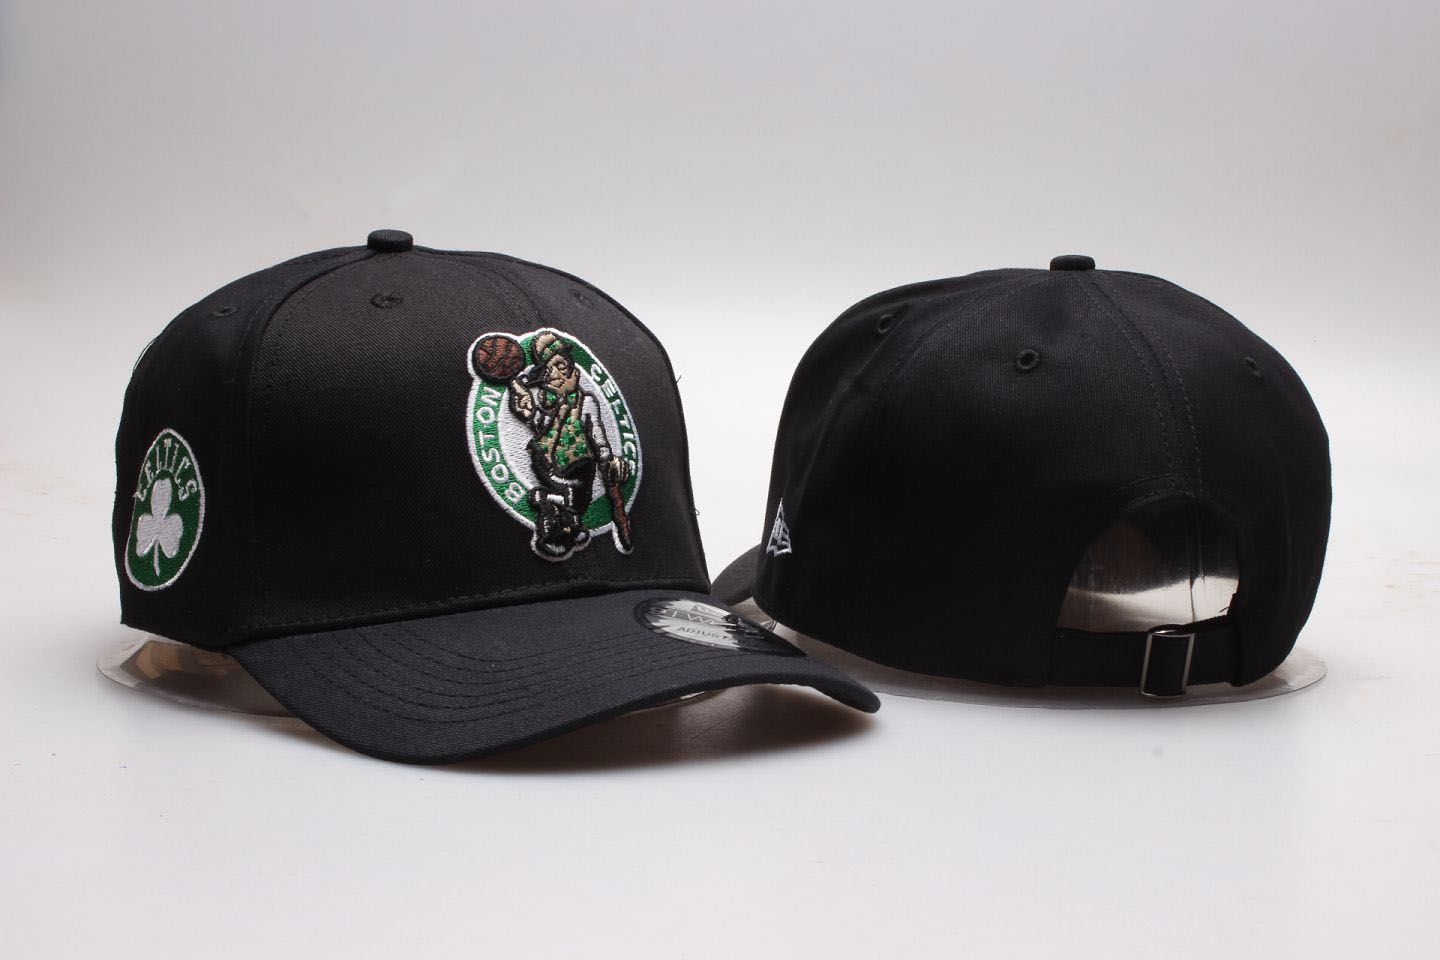 NBA Boston Celtics Snapback hat 201811254